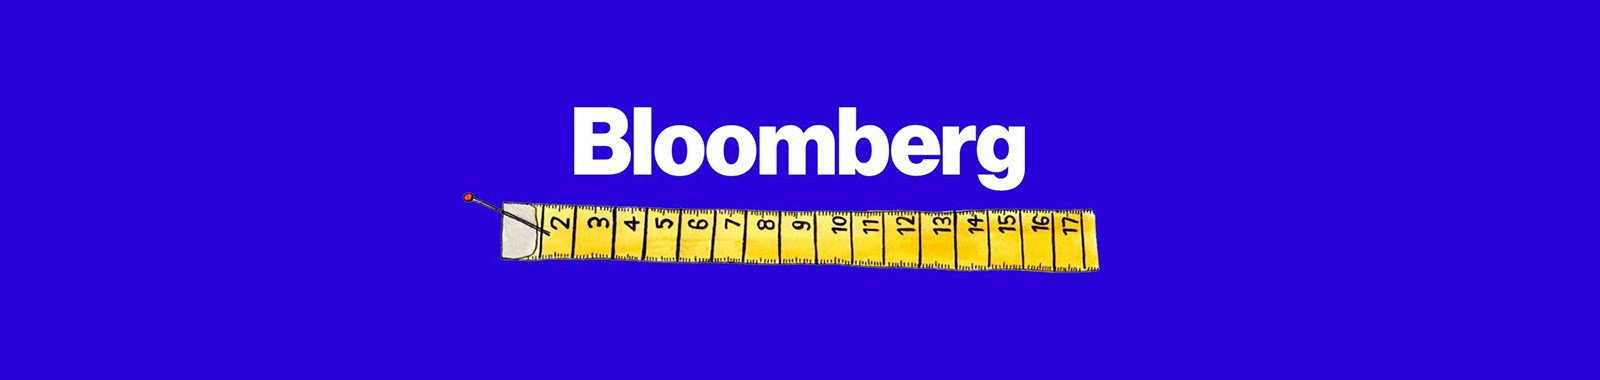 bloomberg-eye